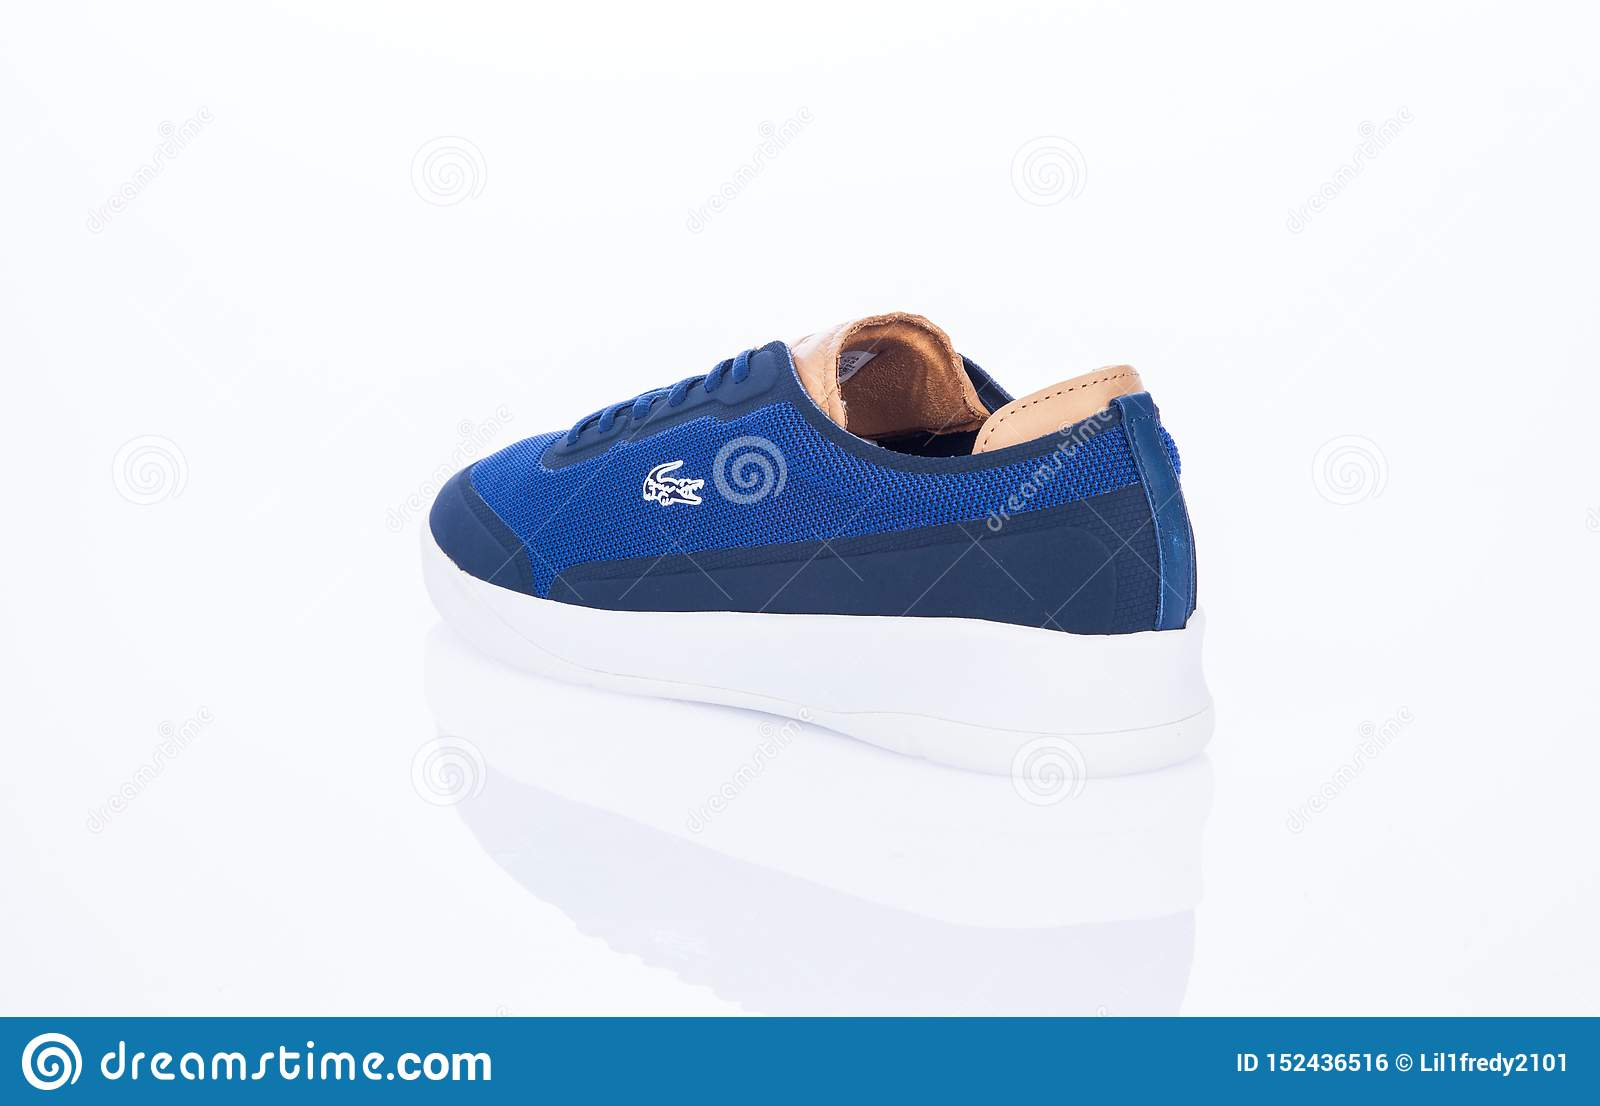 New Shoe Style LACOSTE. Comfortable